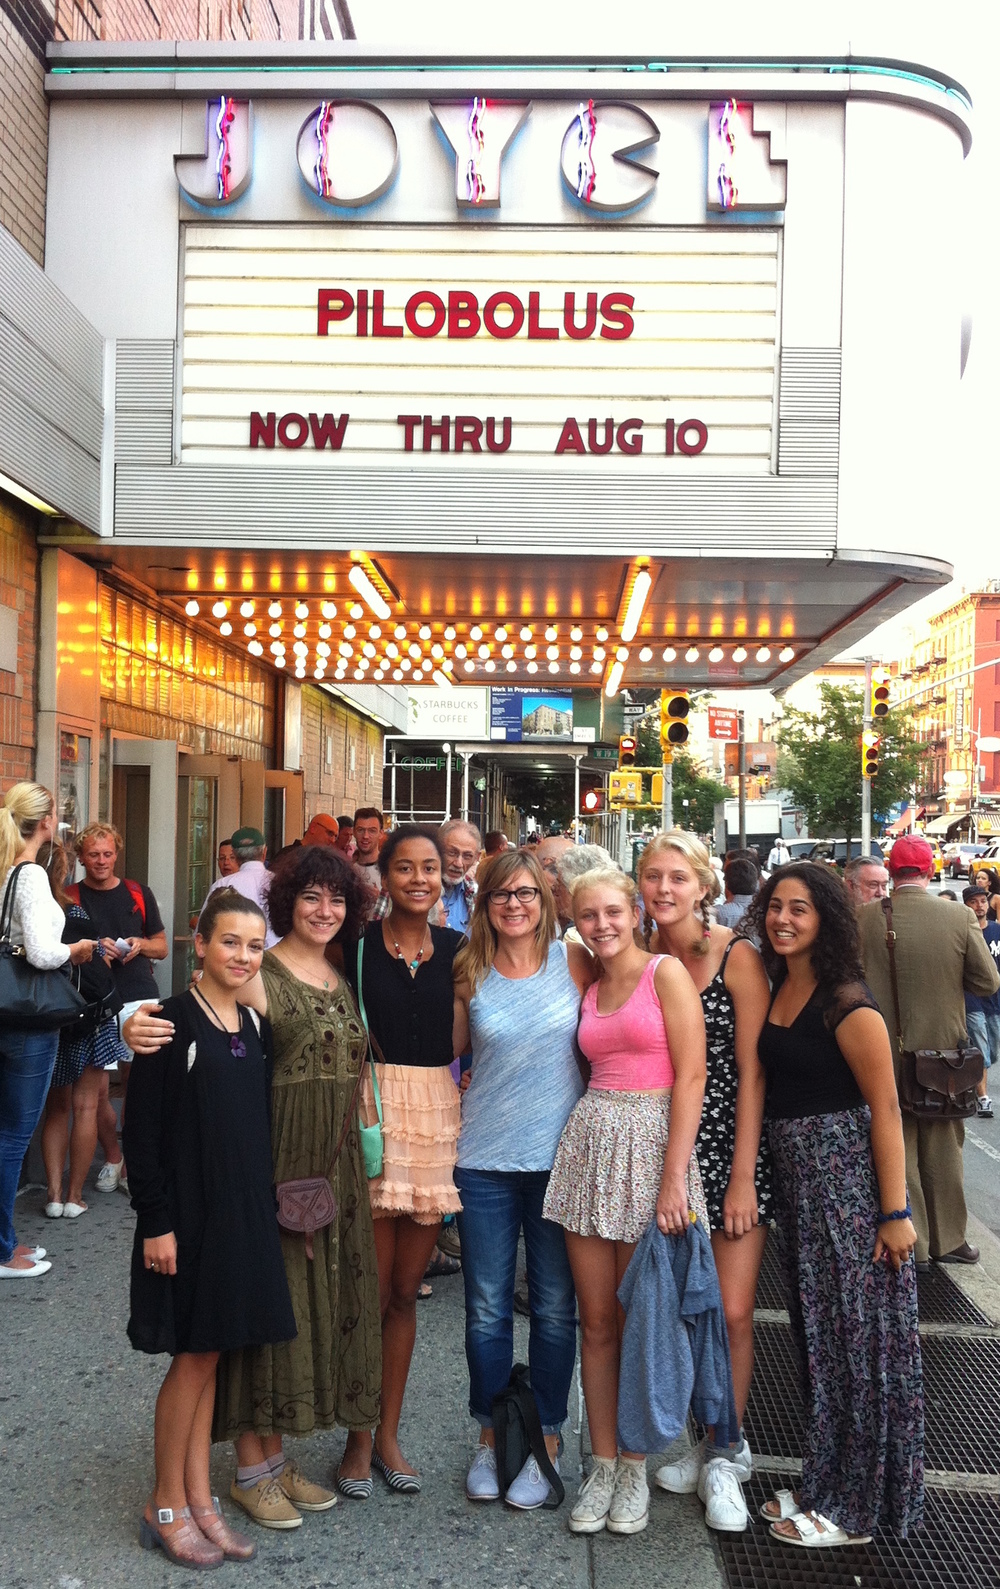 Tori with fellow e.g.dance students at one of our performance field trips - this one to see Pilobolus perform at the Joyce.